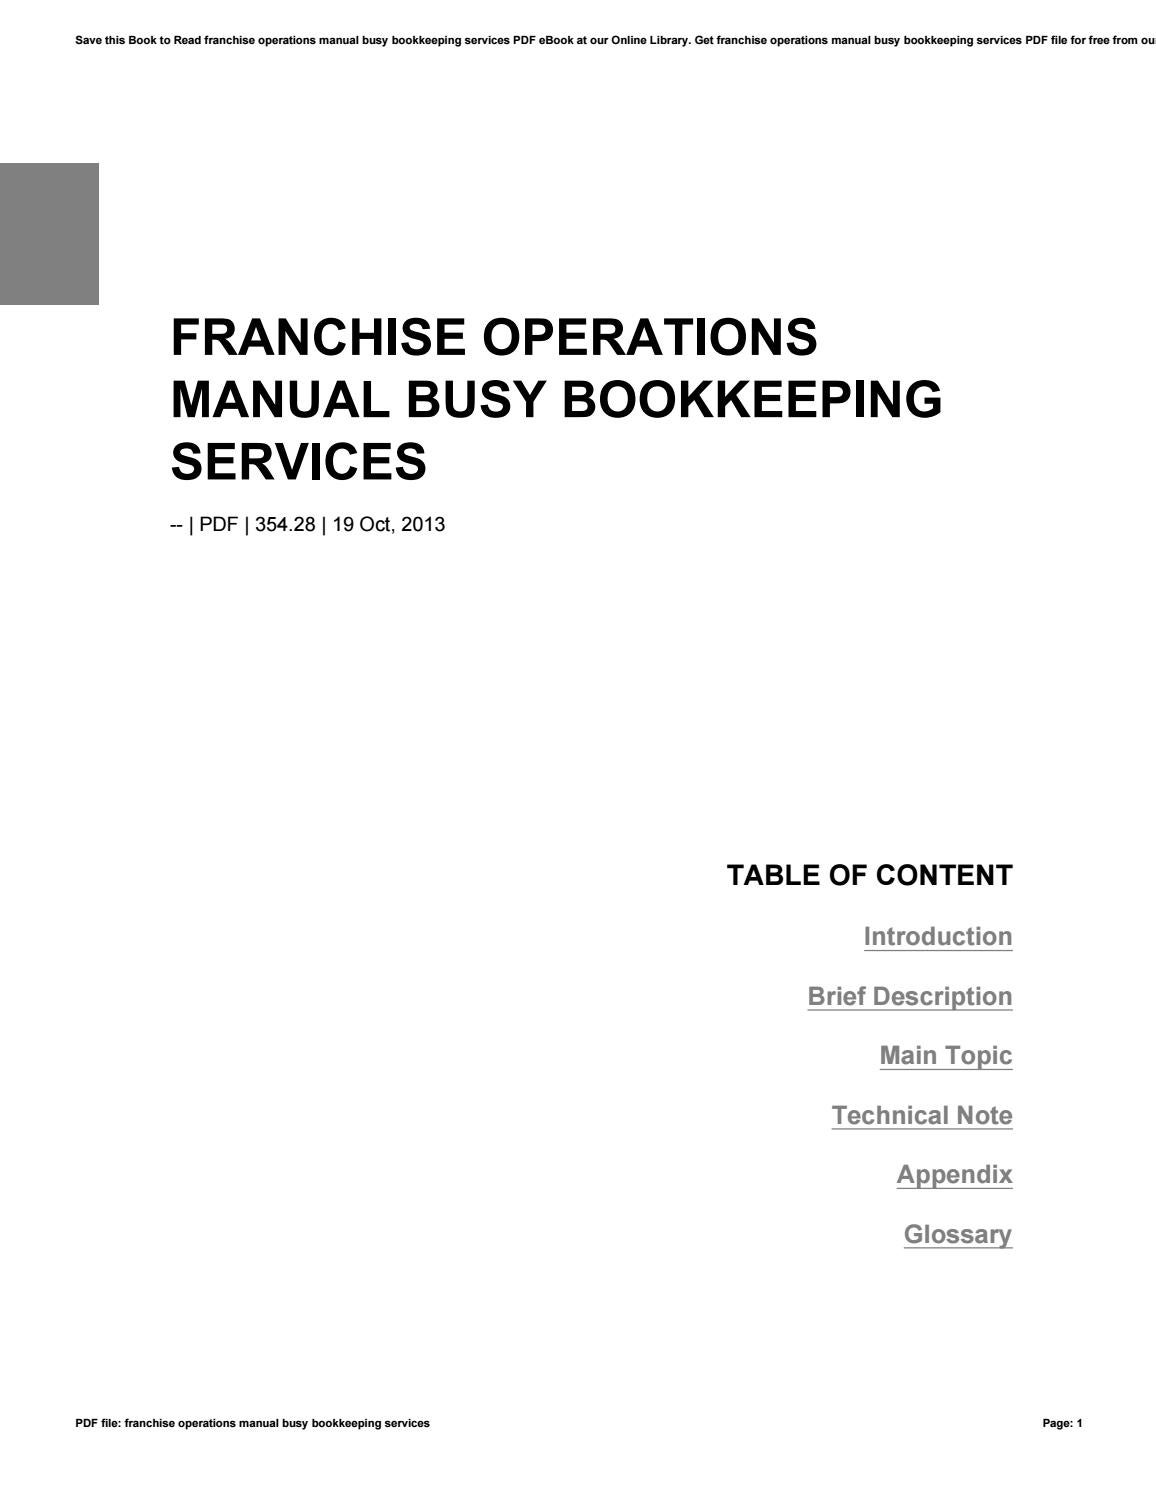 Franchise operations manual busy bookkeeping services by nezzart64 - issuu